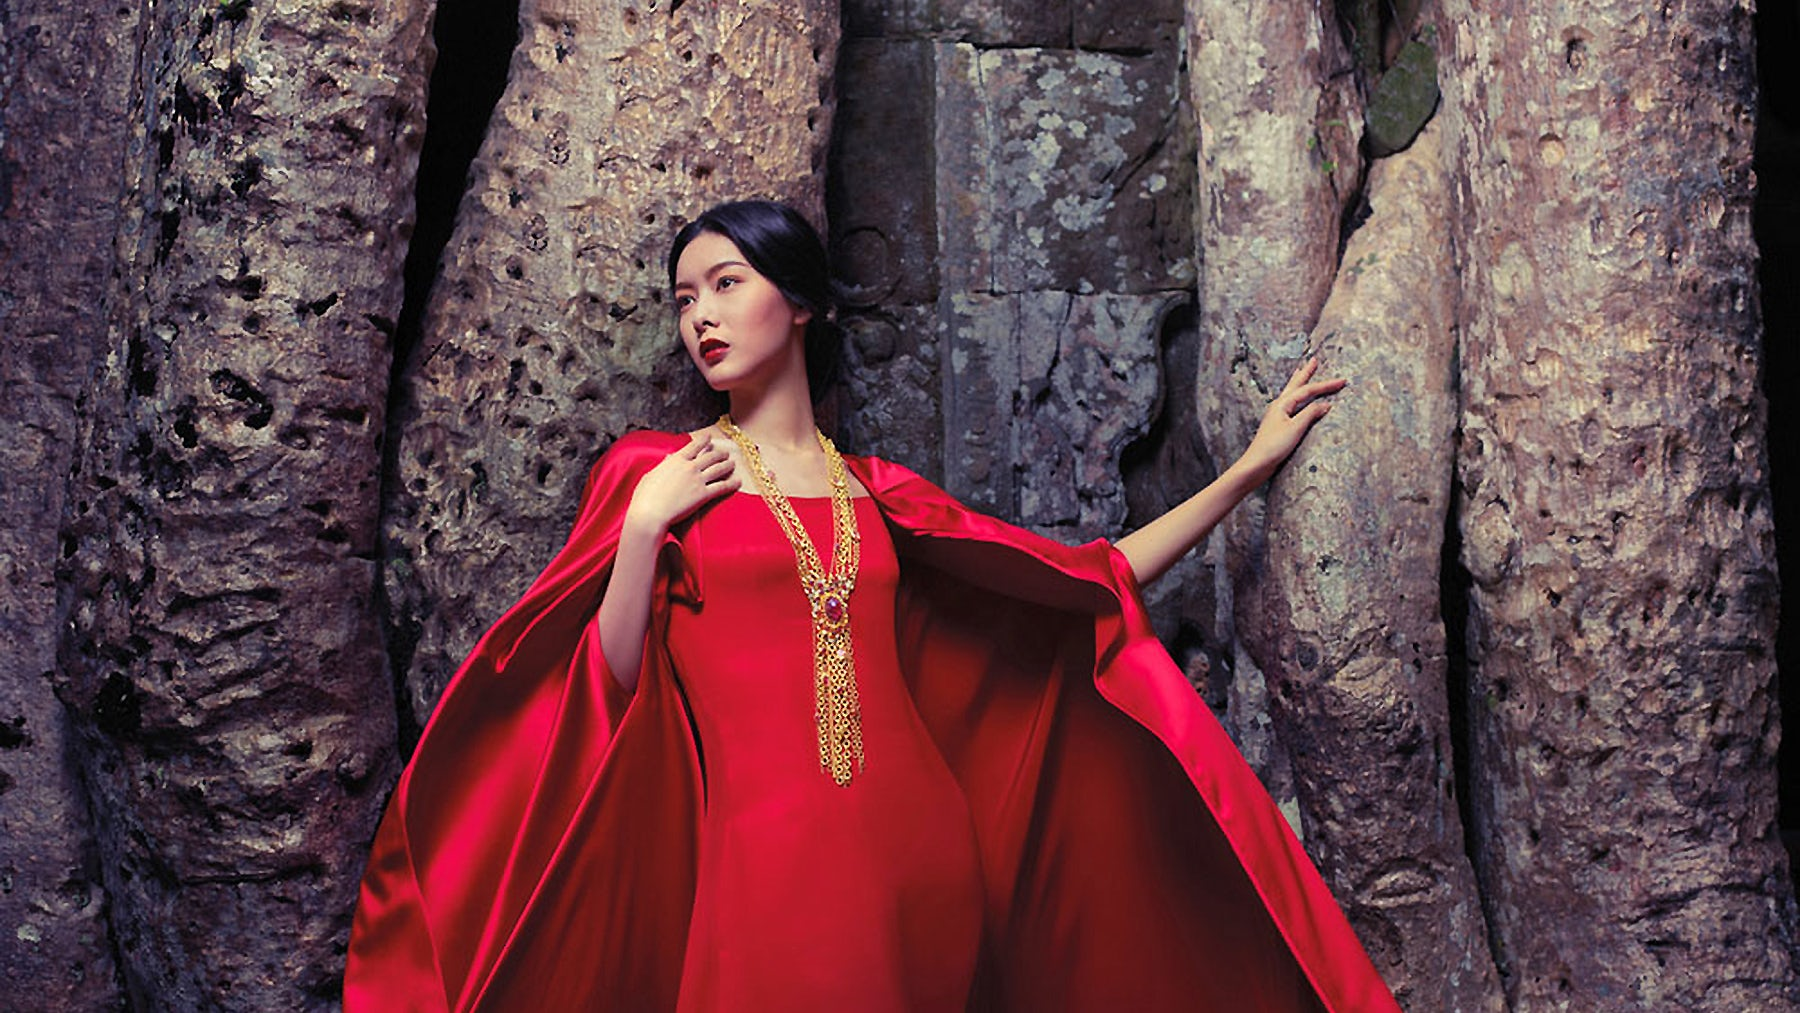 Chow Tai Fook's 'Reflections of Siem' collection | Source: Chow Tai Fook